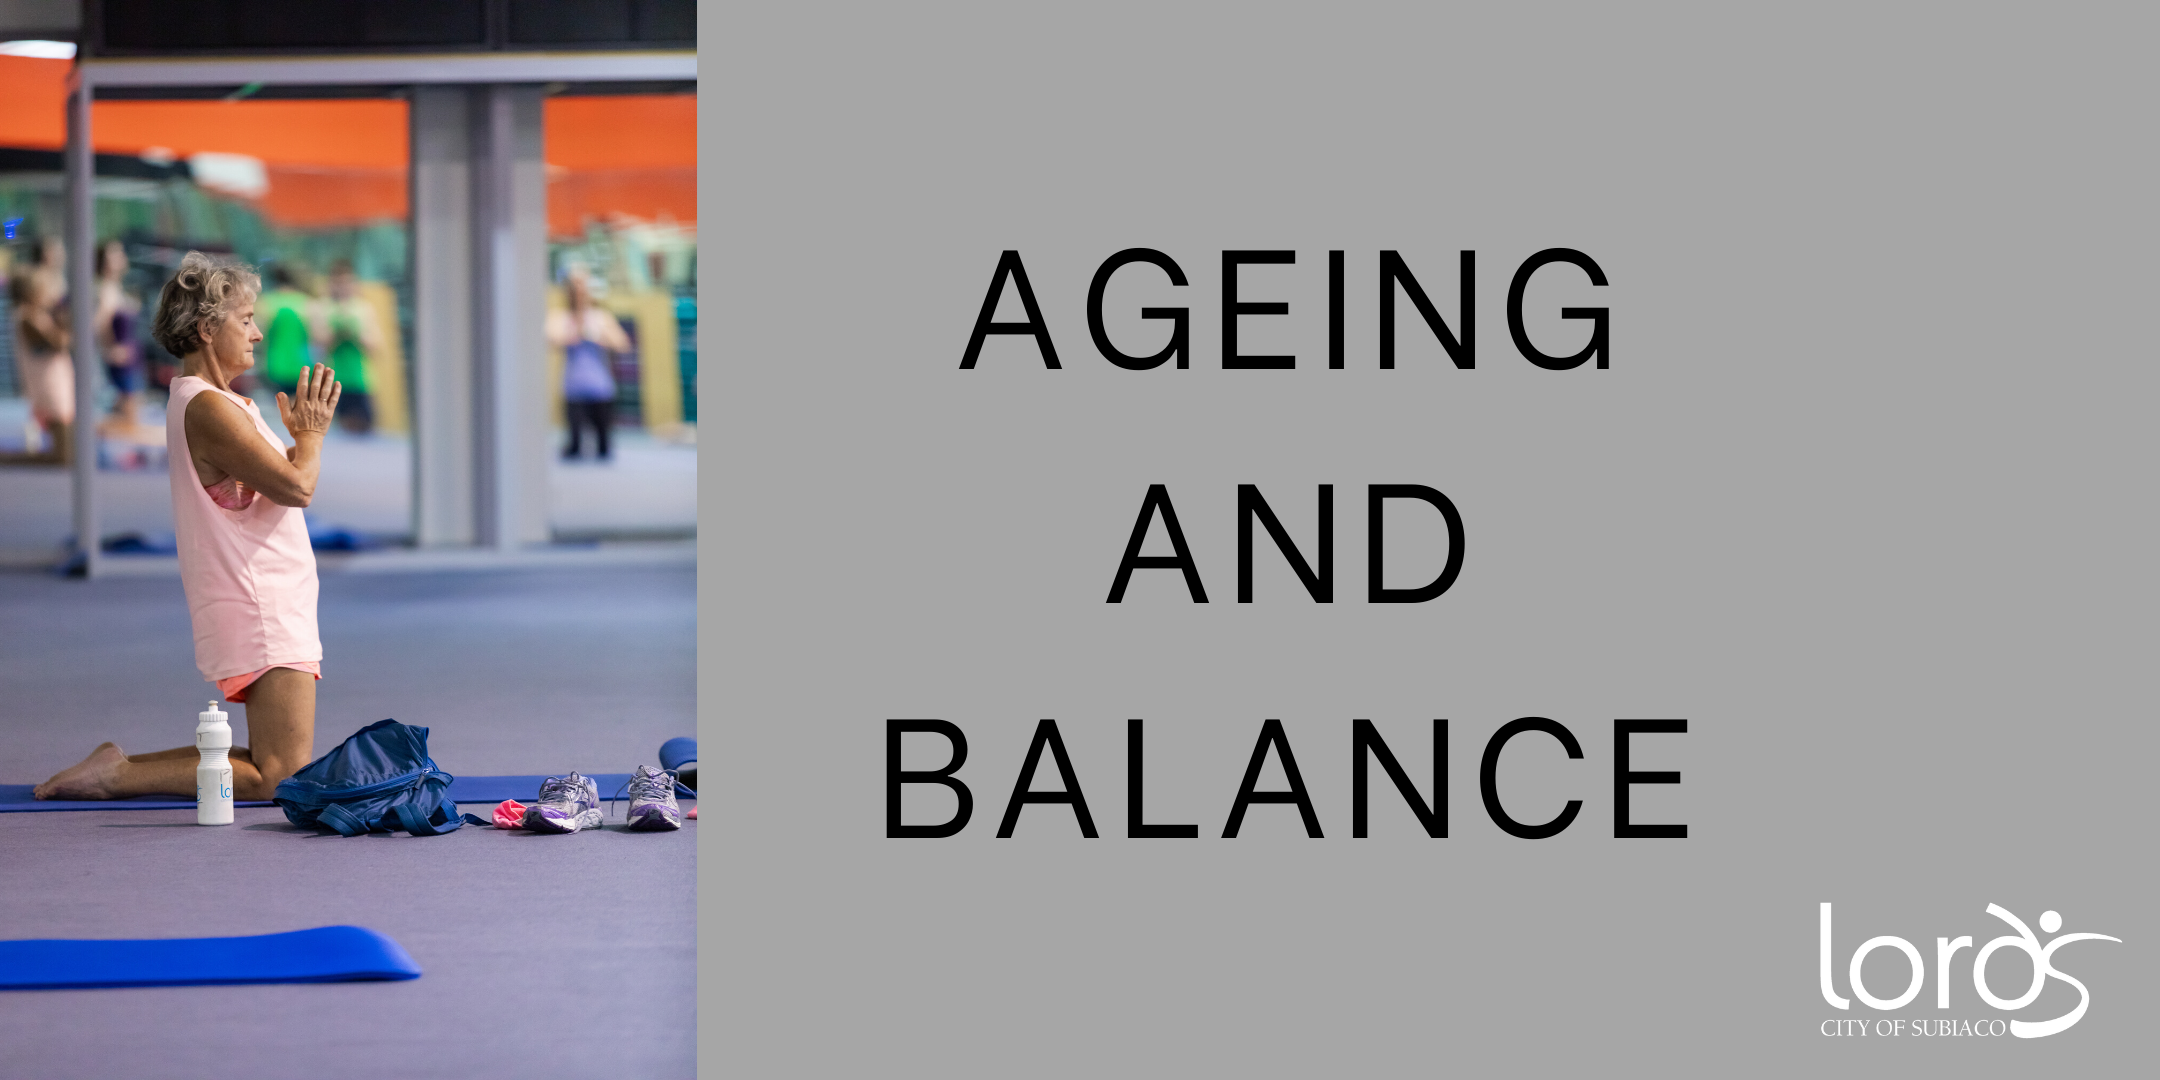 Ageing and Balance workshop